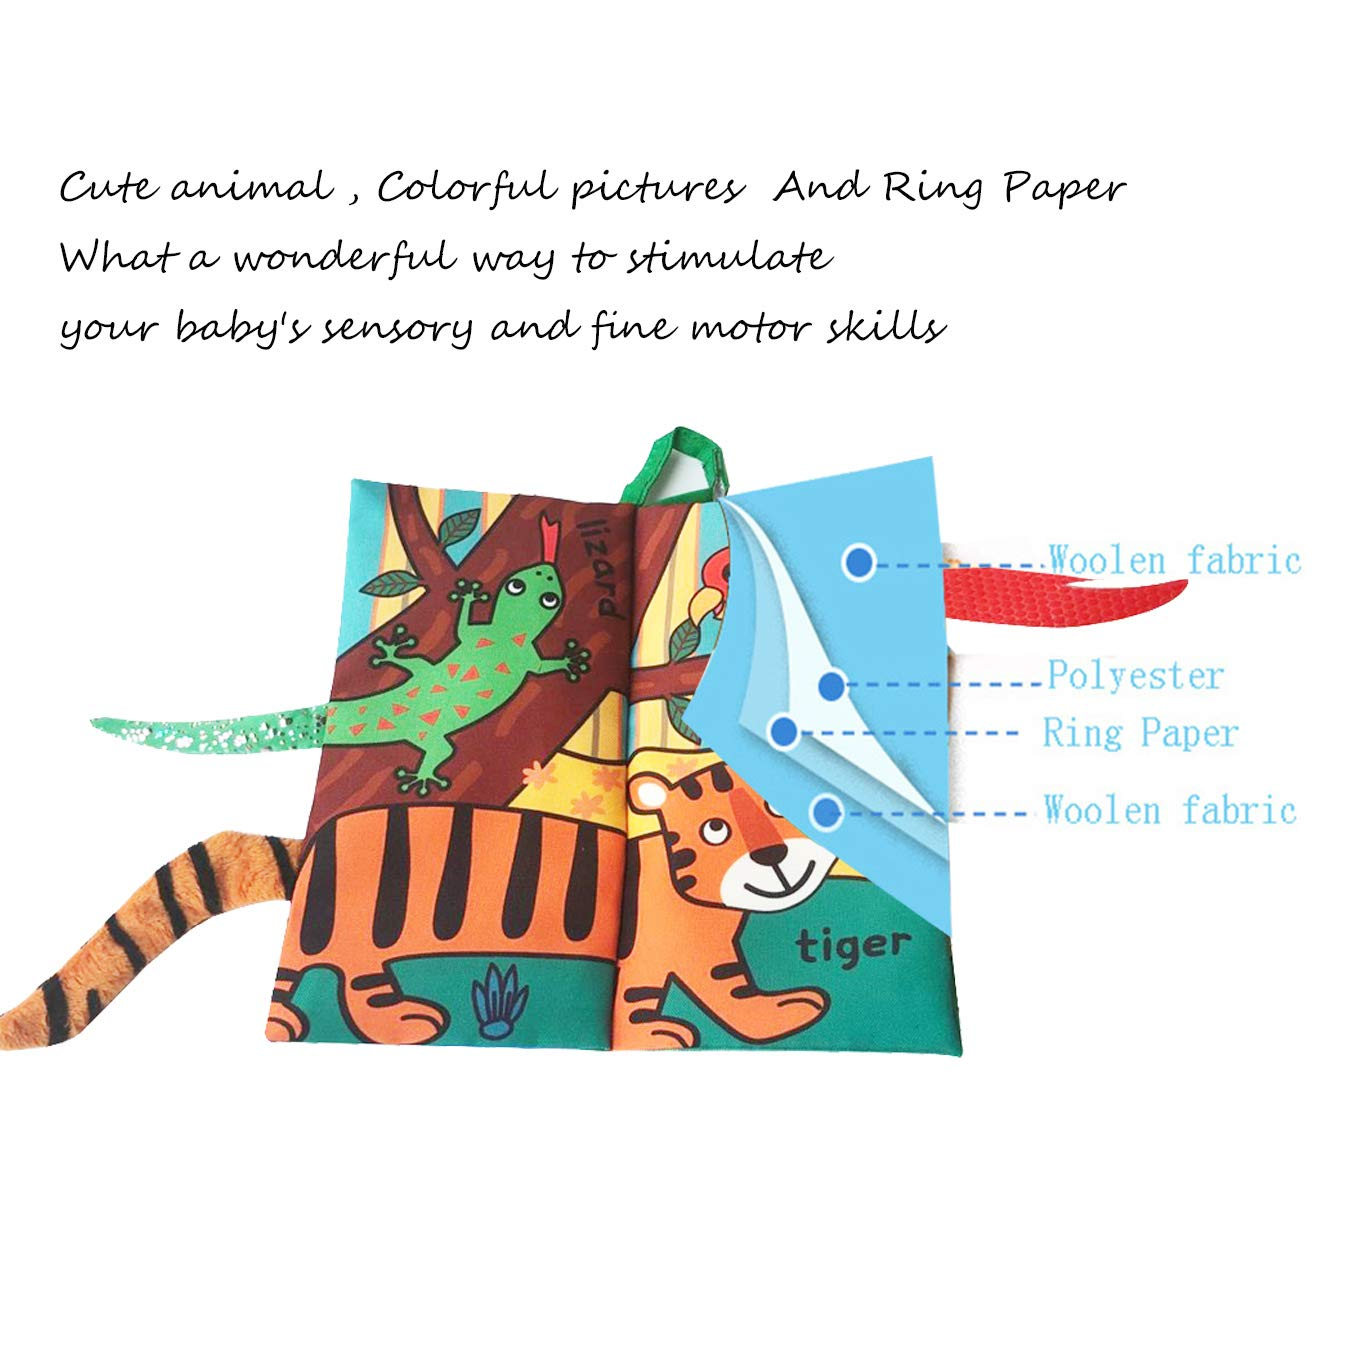 Leeotia Jungle Animal Tail Cloth Books/ Fabric Activity Crinkle Book, Handmade Educational Toys for Baby, 1 Year Old, Gift for Babies/Toddler (Rain Forest Animal Tail)